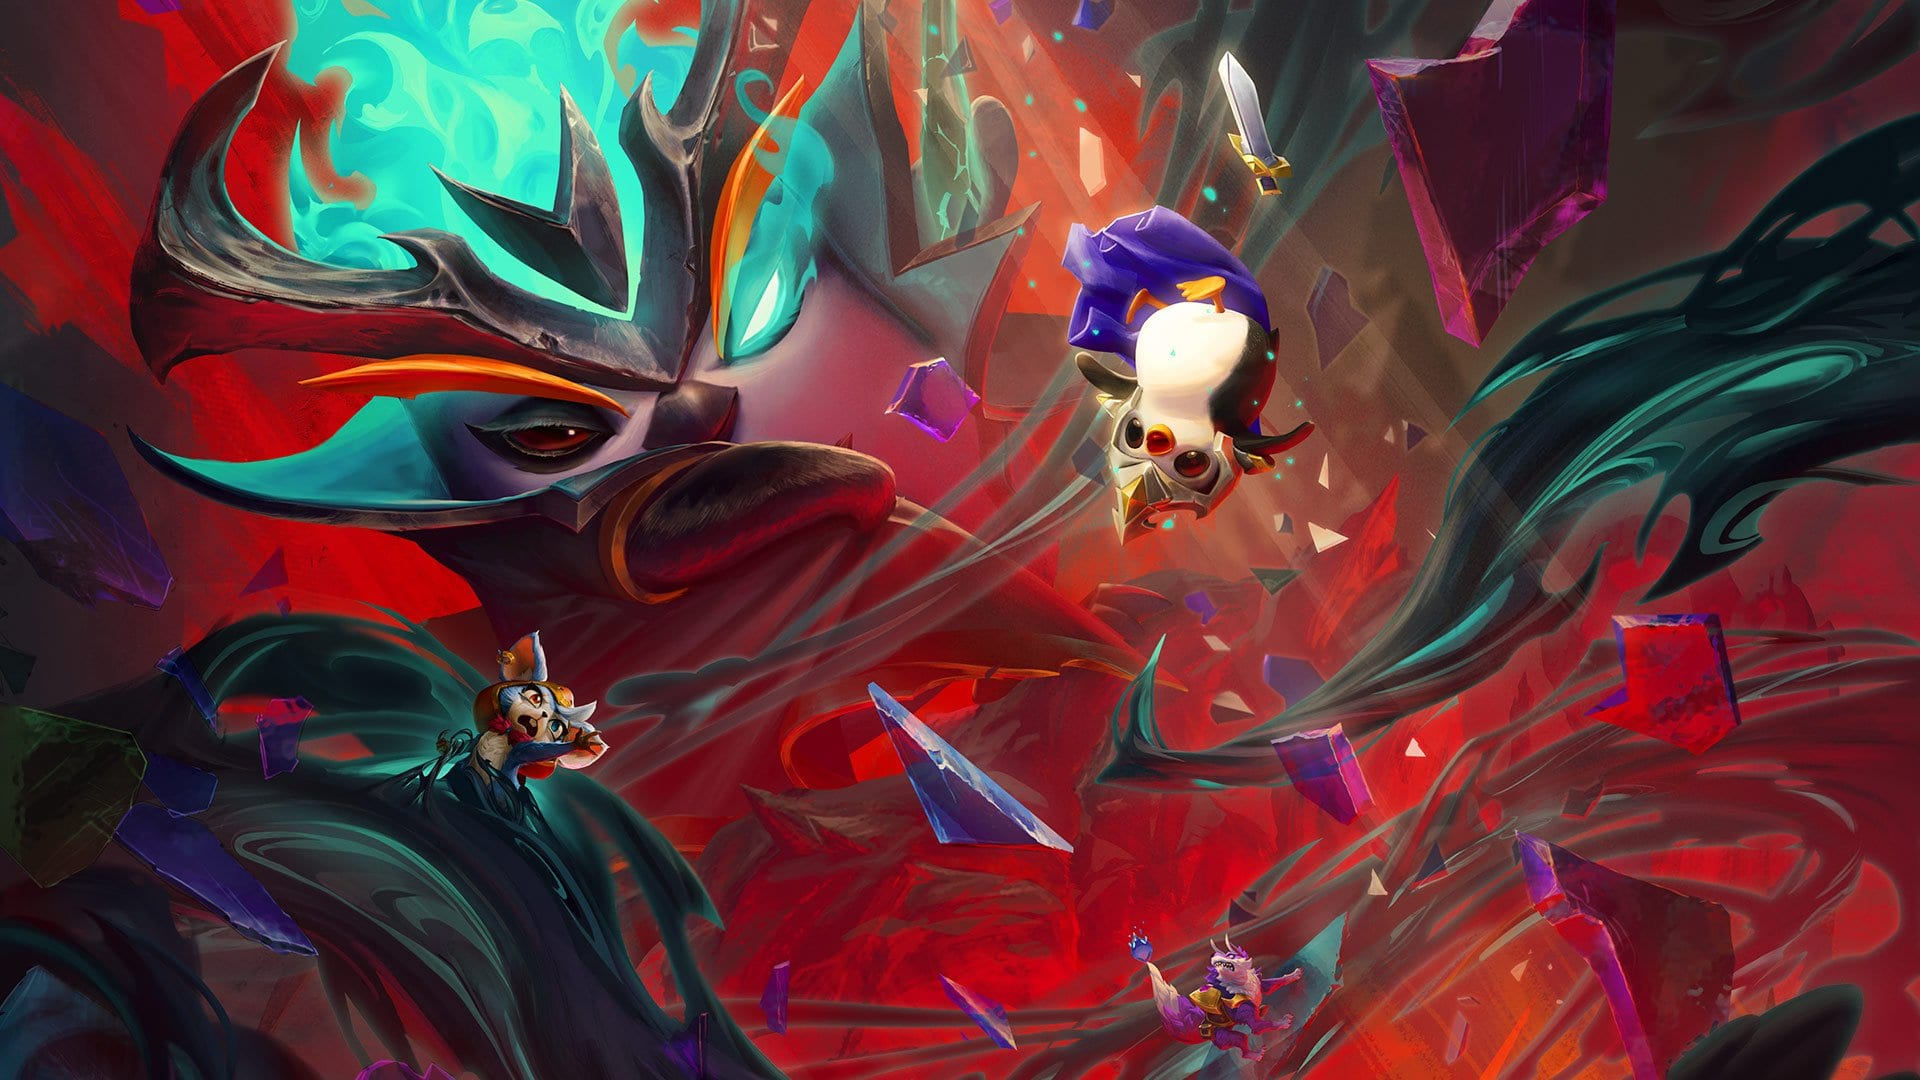 TFT reckoning release date